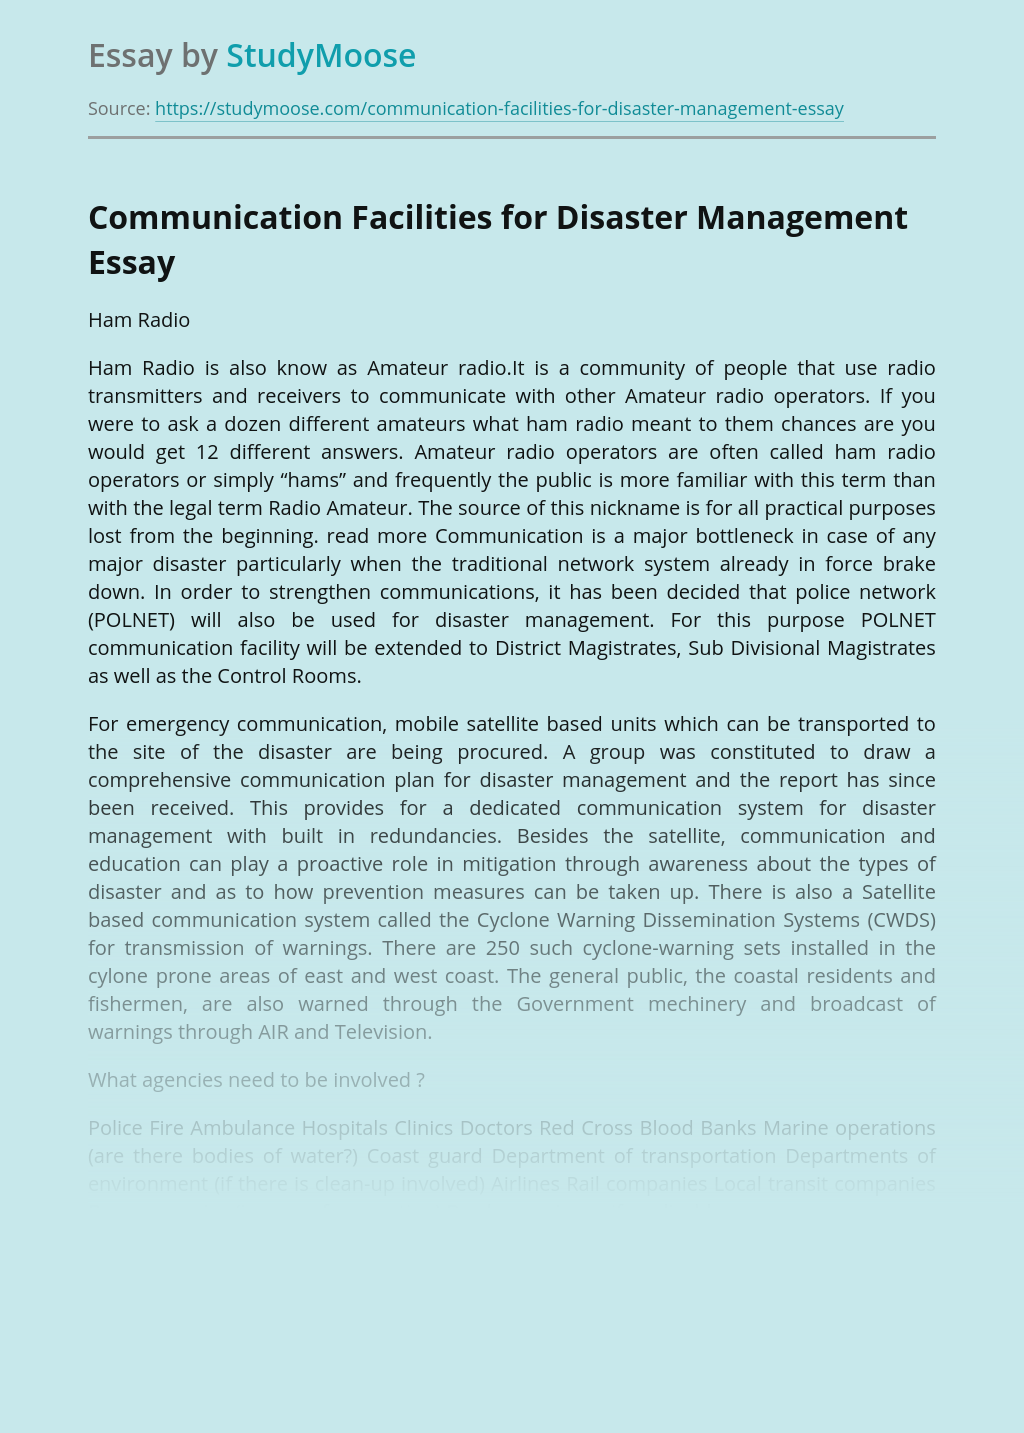 Communication Facilities for Disaster Management